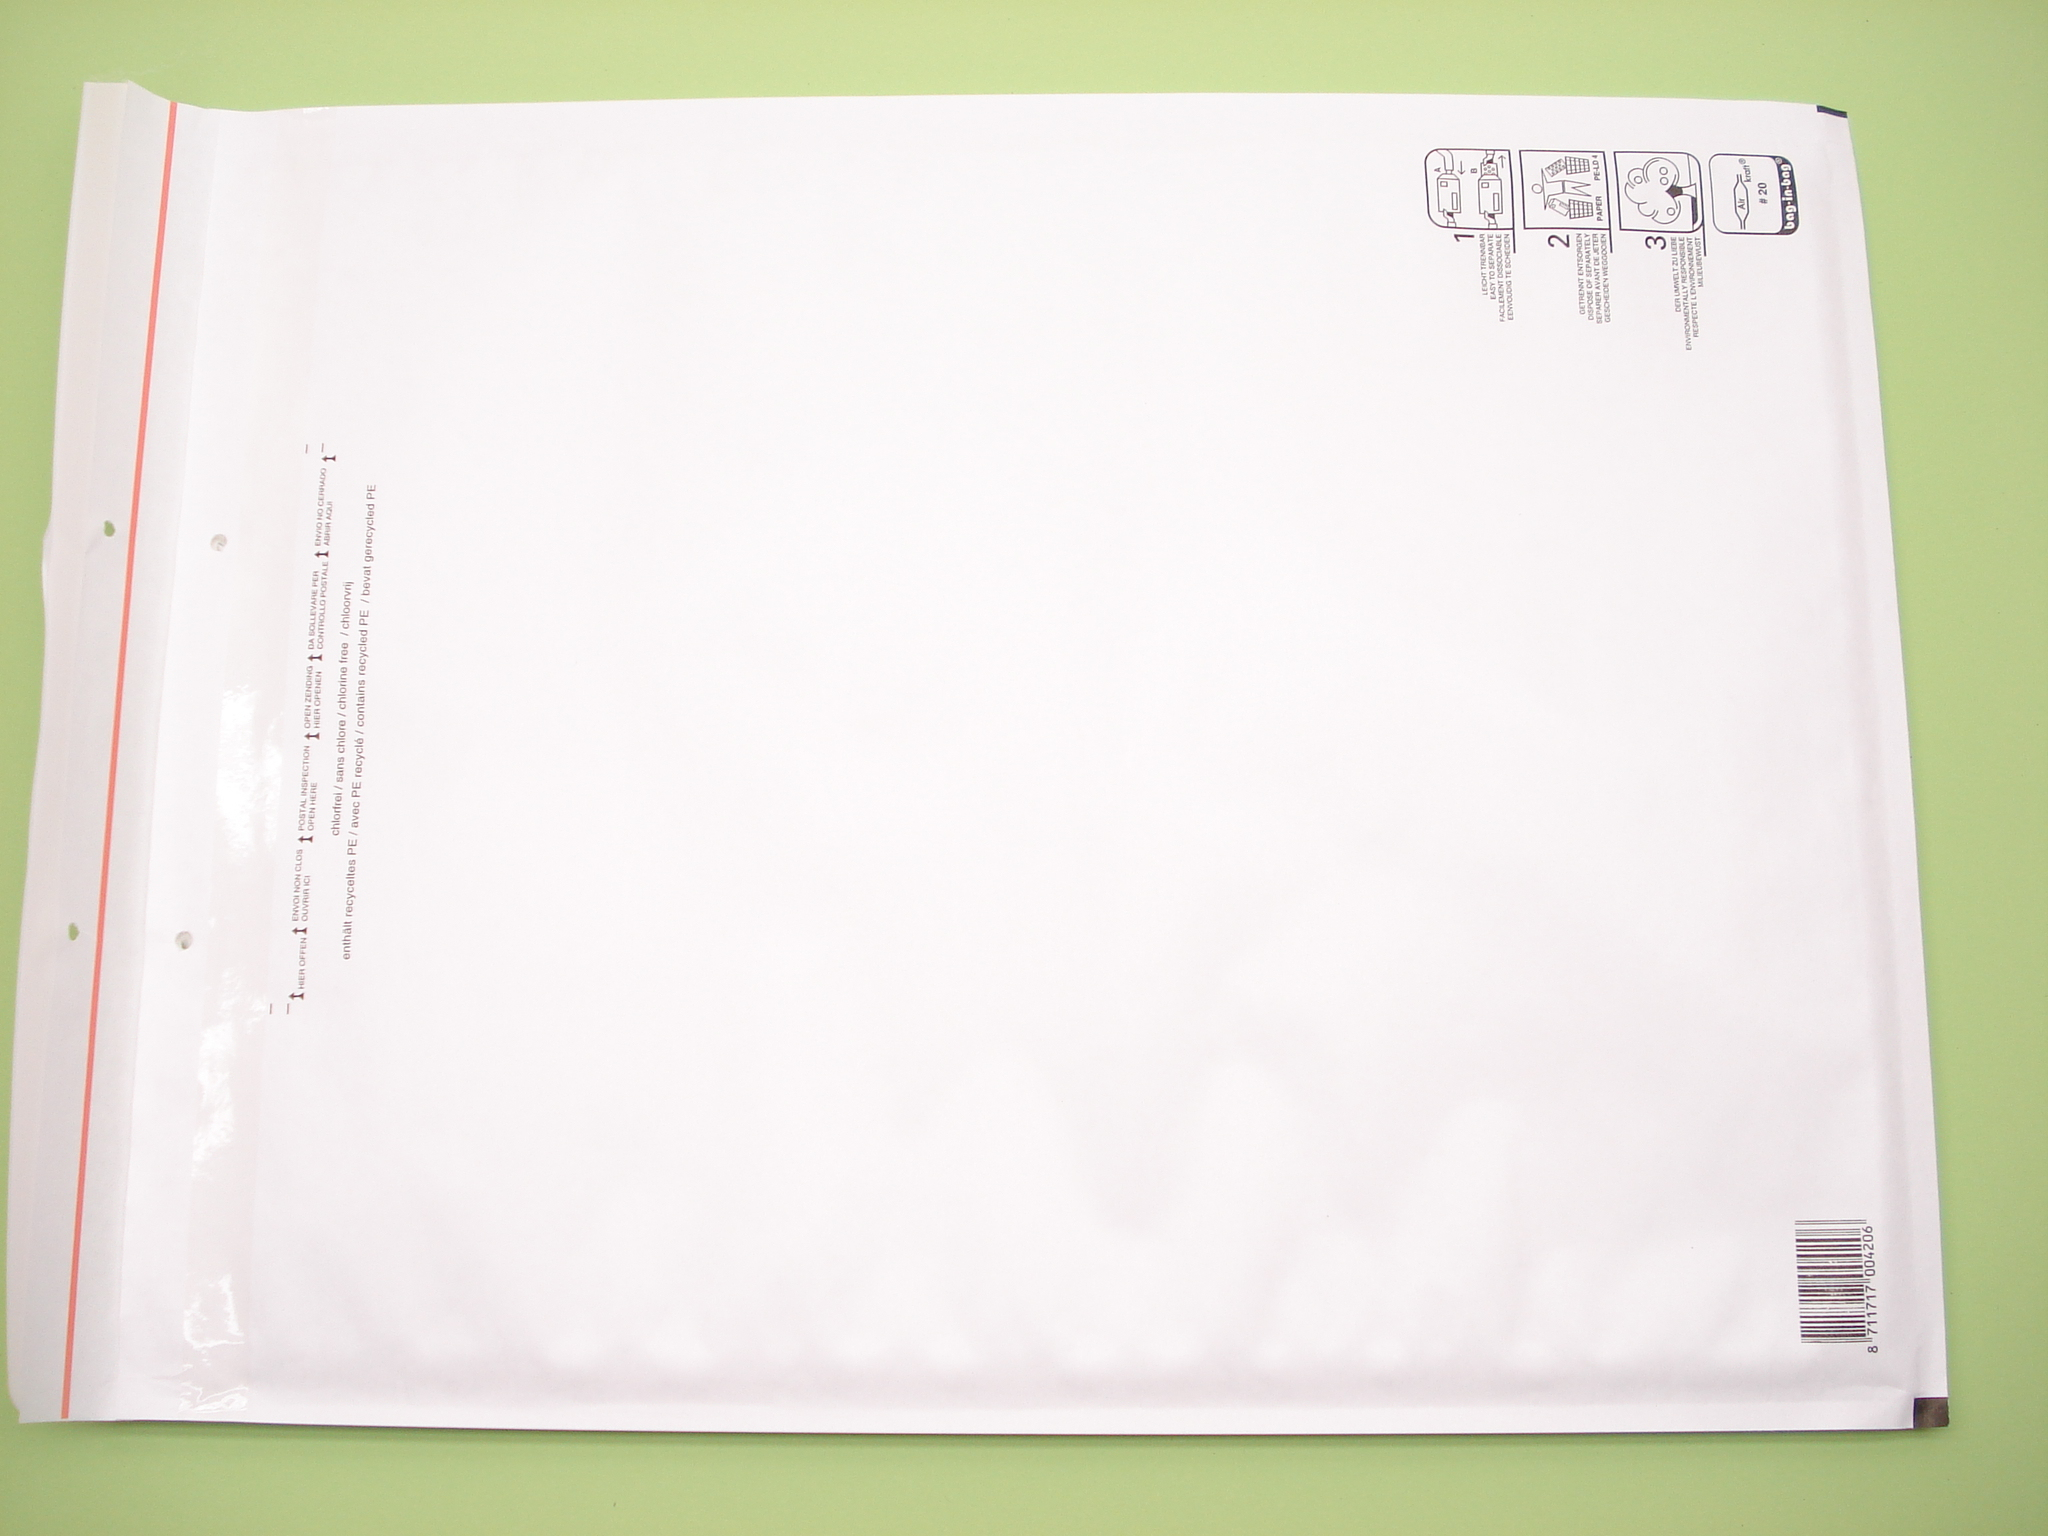 10 aircraft envelop #20 370*480mm